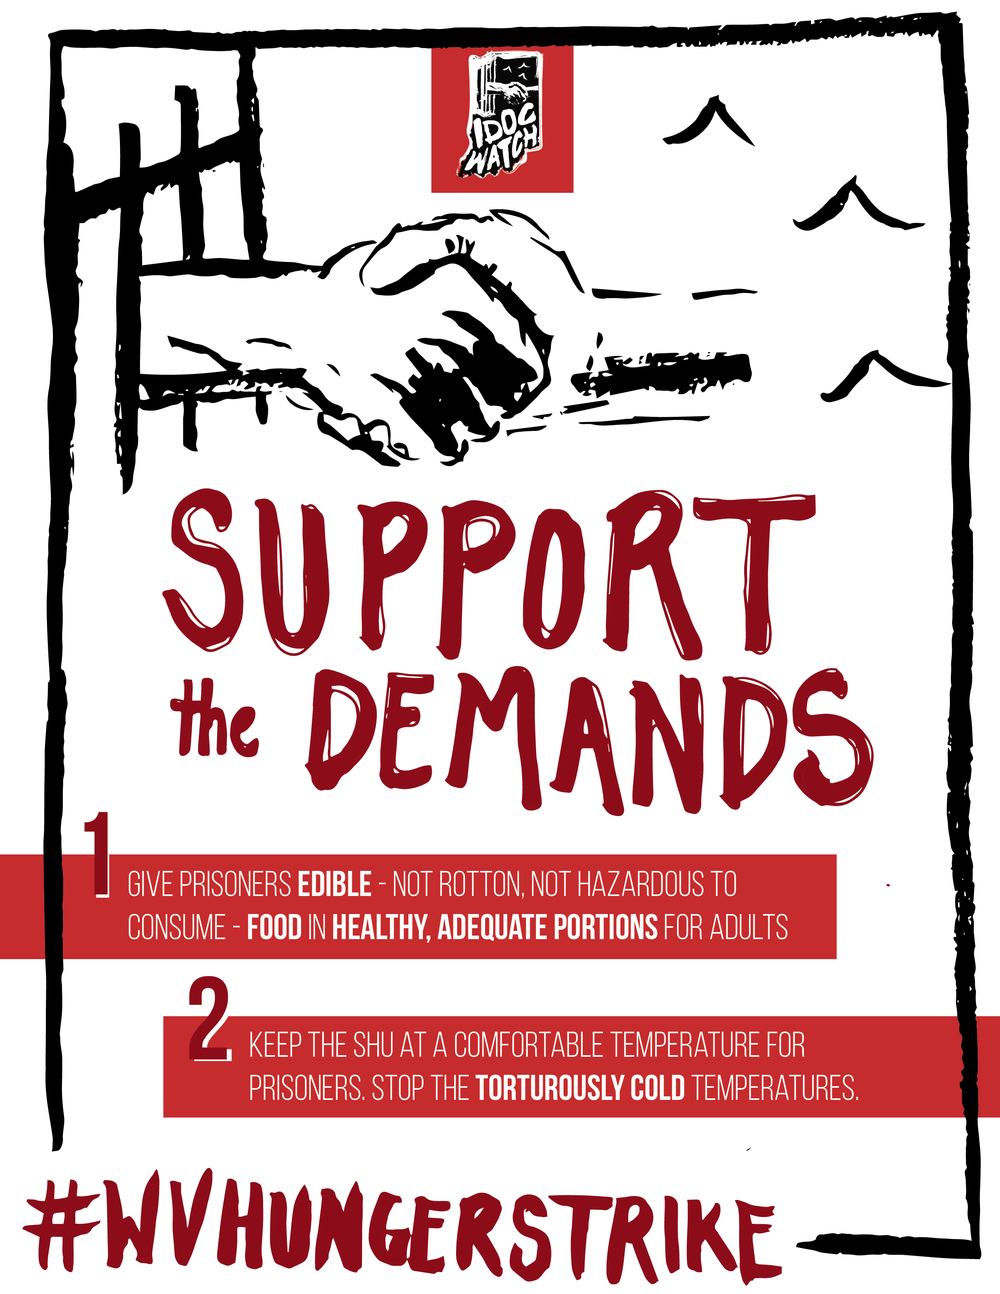 A graphic highlighting the demands of striking prisoners at Wabash Valley during the 2018 Prison Strike.